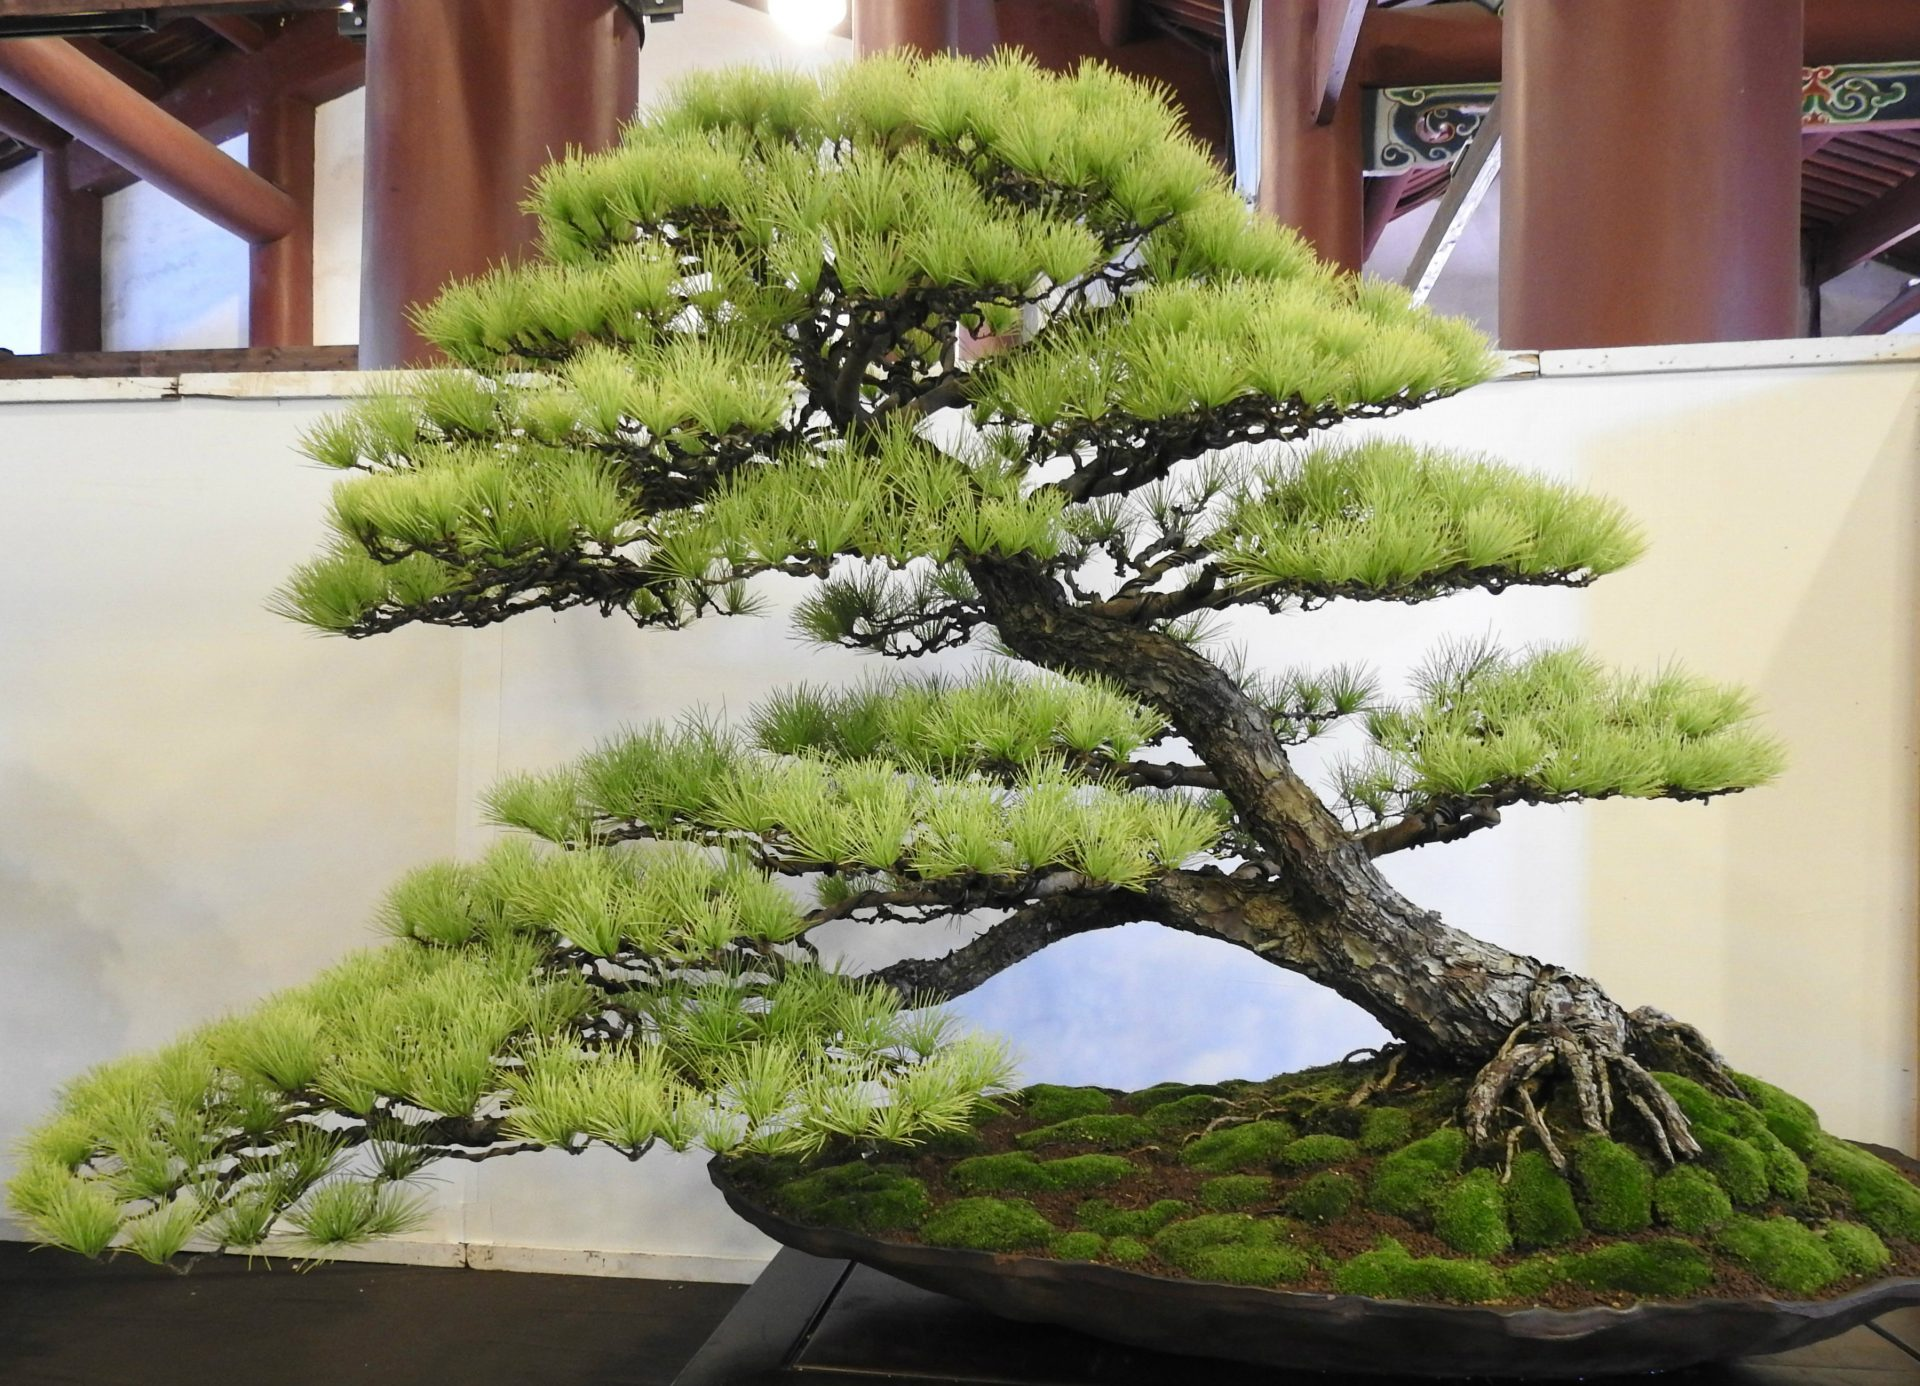 One of the gold award-winning bonsai works at the 2017 Han Feng Bonsai Exposition (Image: Billy Shyu/ Vision Times)